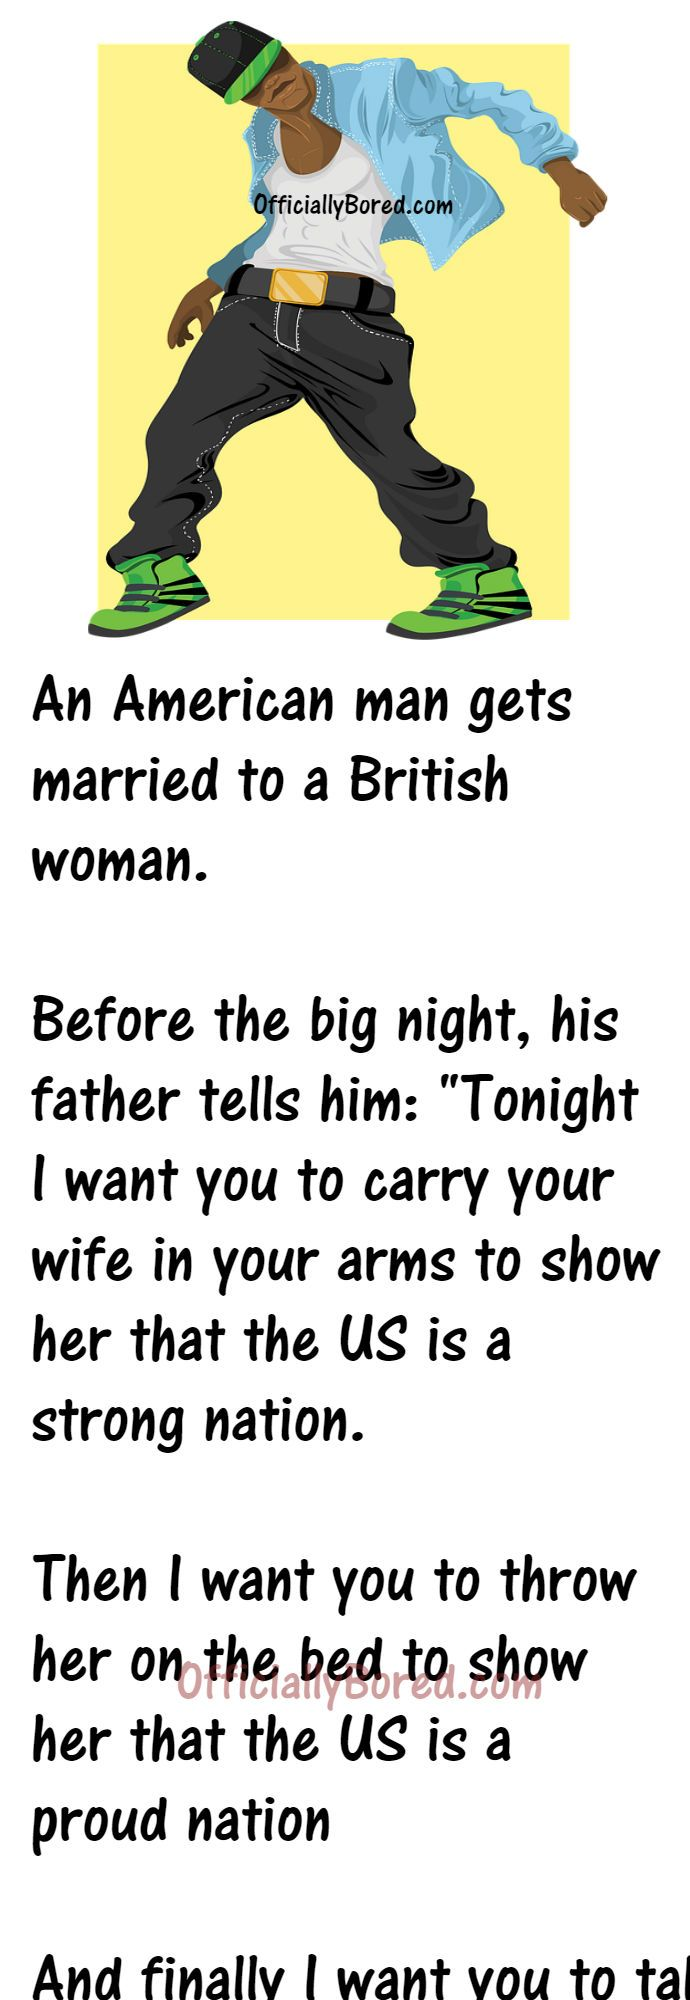 And Finally I Want You To Take Of Your Clothes To Show Her That The Us Is A Beautiful Nation After The Big Night The Father Asks In 2020 British Women